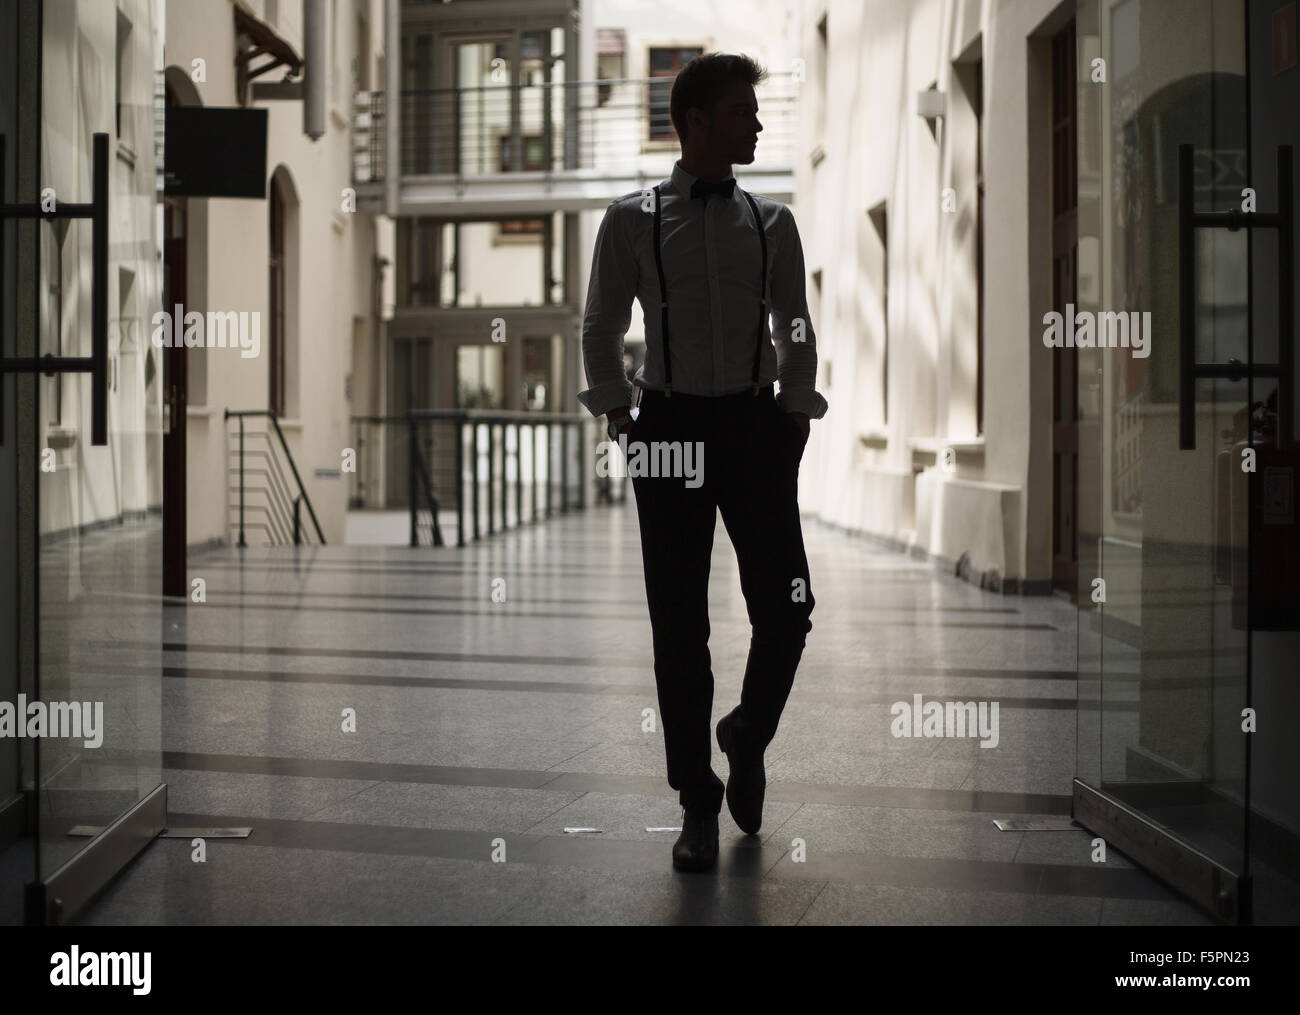 Smart man walking in the building - Stock Image